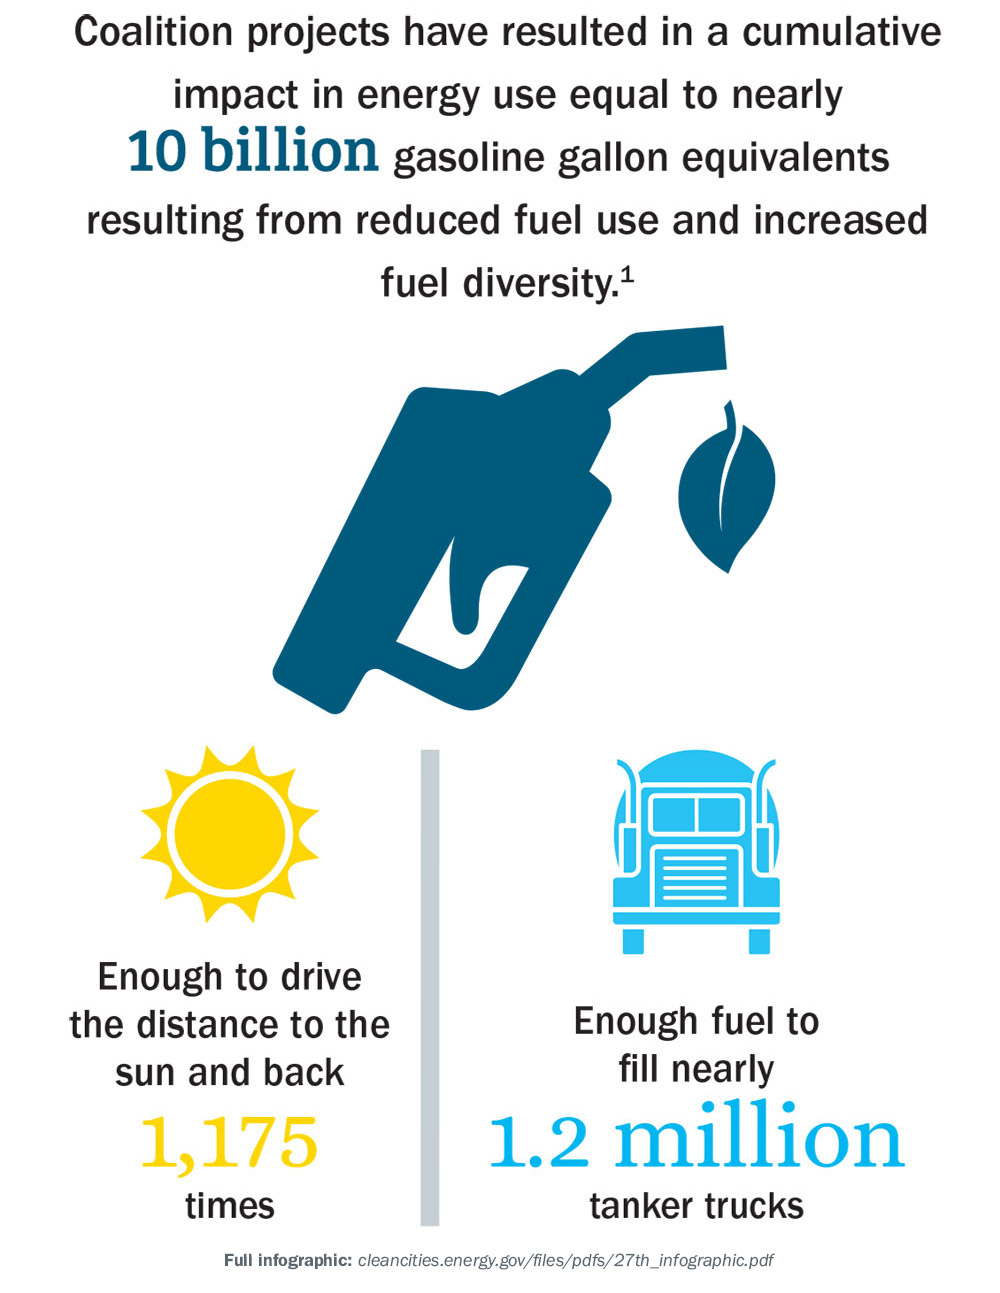 Coalition projects have resulted in a cumulative impact in energy use equal to nearly 10 billion gasoline gallon equivalents resulting from reduced fuel use and increased fuel diversity. Enough to drive the distance to the sun and back 1,175 times. Enough fuel to fill nearly 1.2 million tanker trucks.